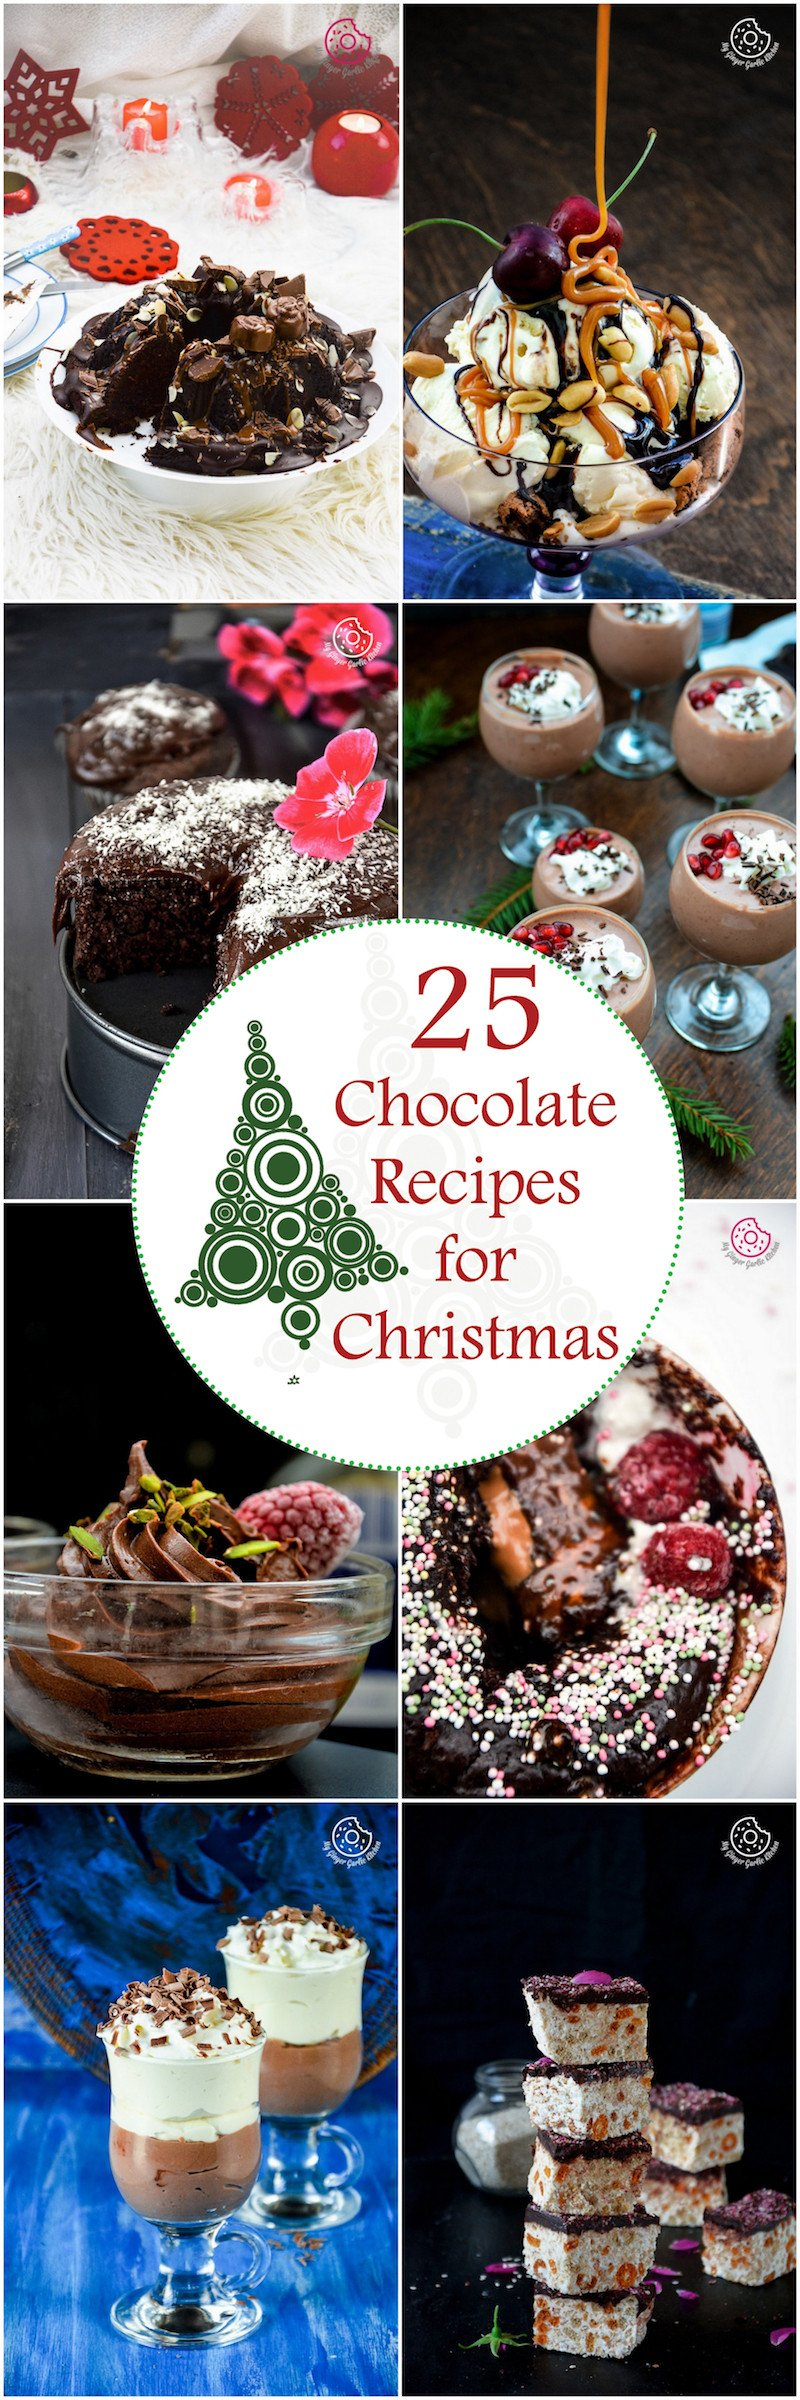 25-chocolate-recipes-for-christmas|mygingergarlickitchen.com/ @anupama_dreams